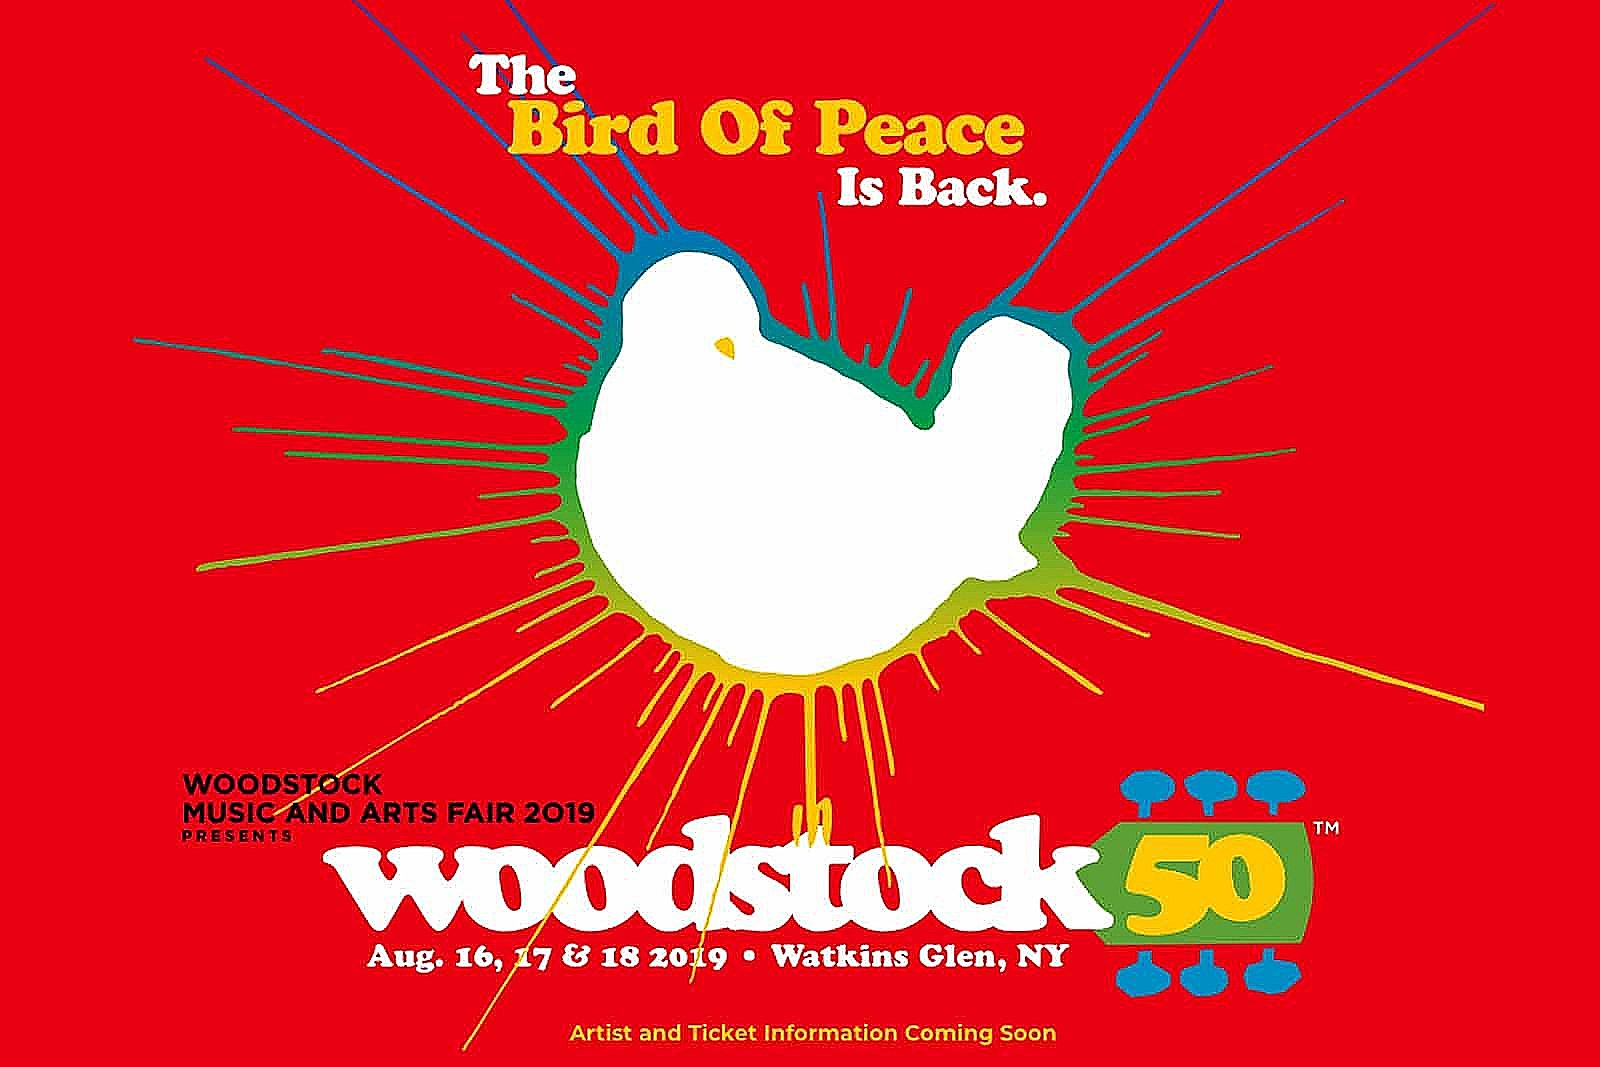 Woodstock 50 Rescued, New Location Named